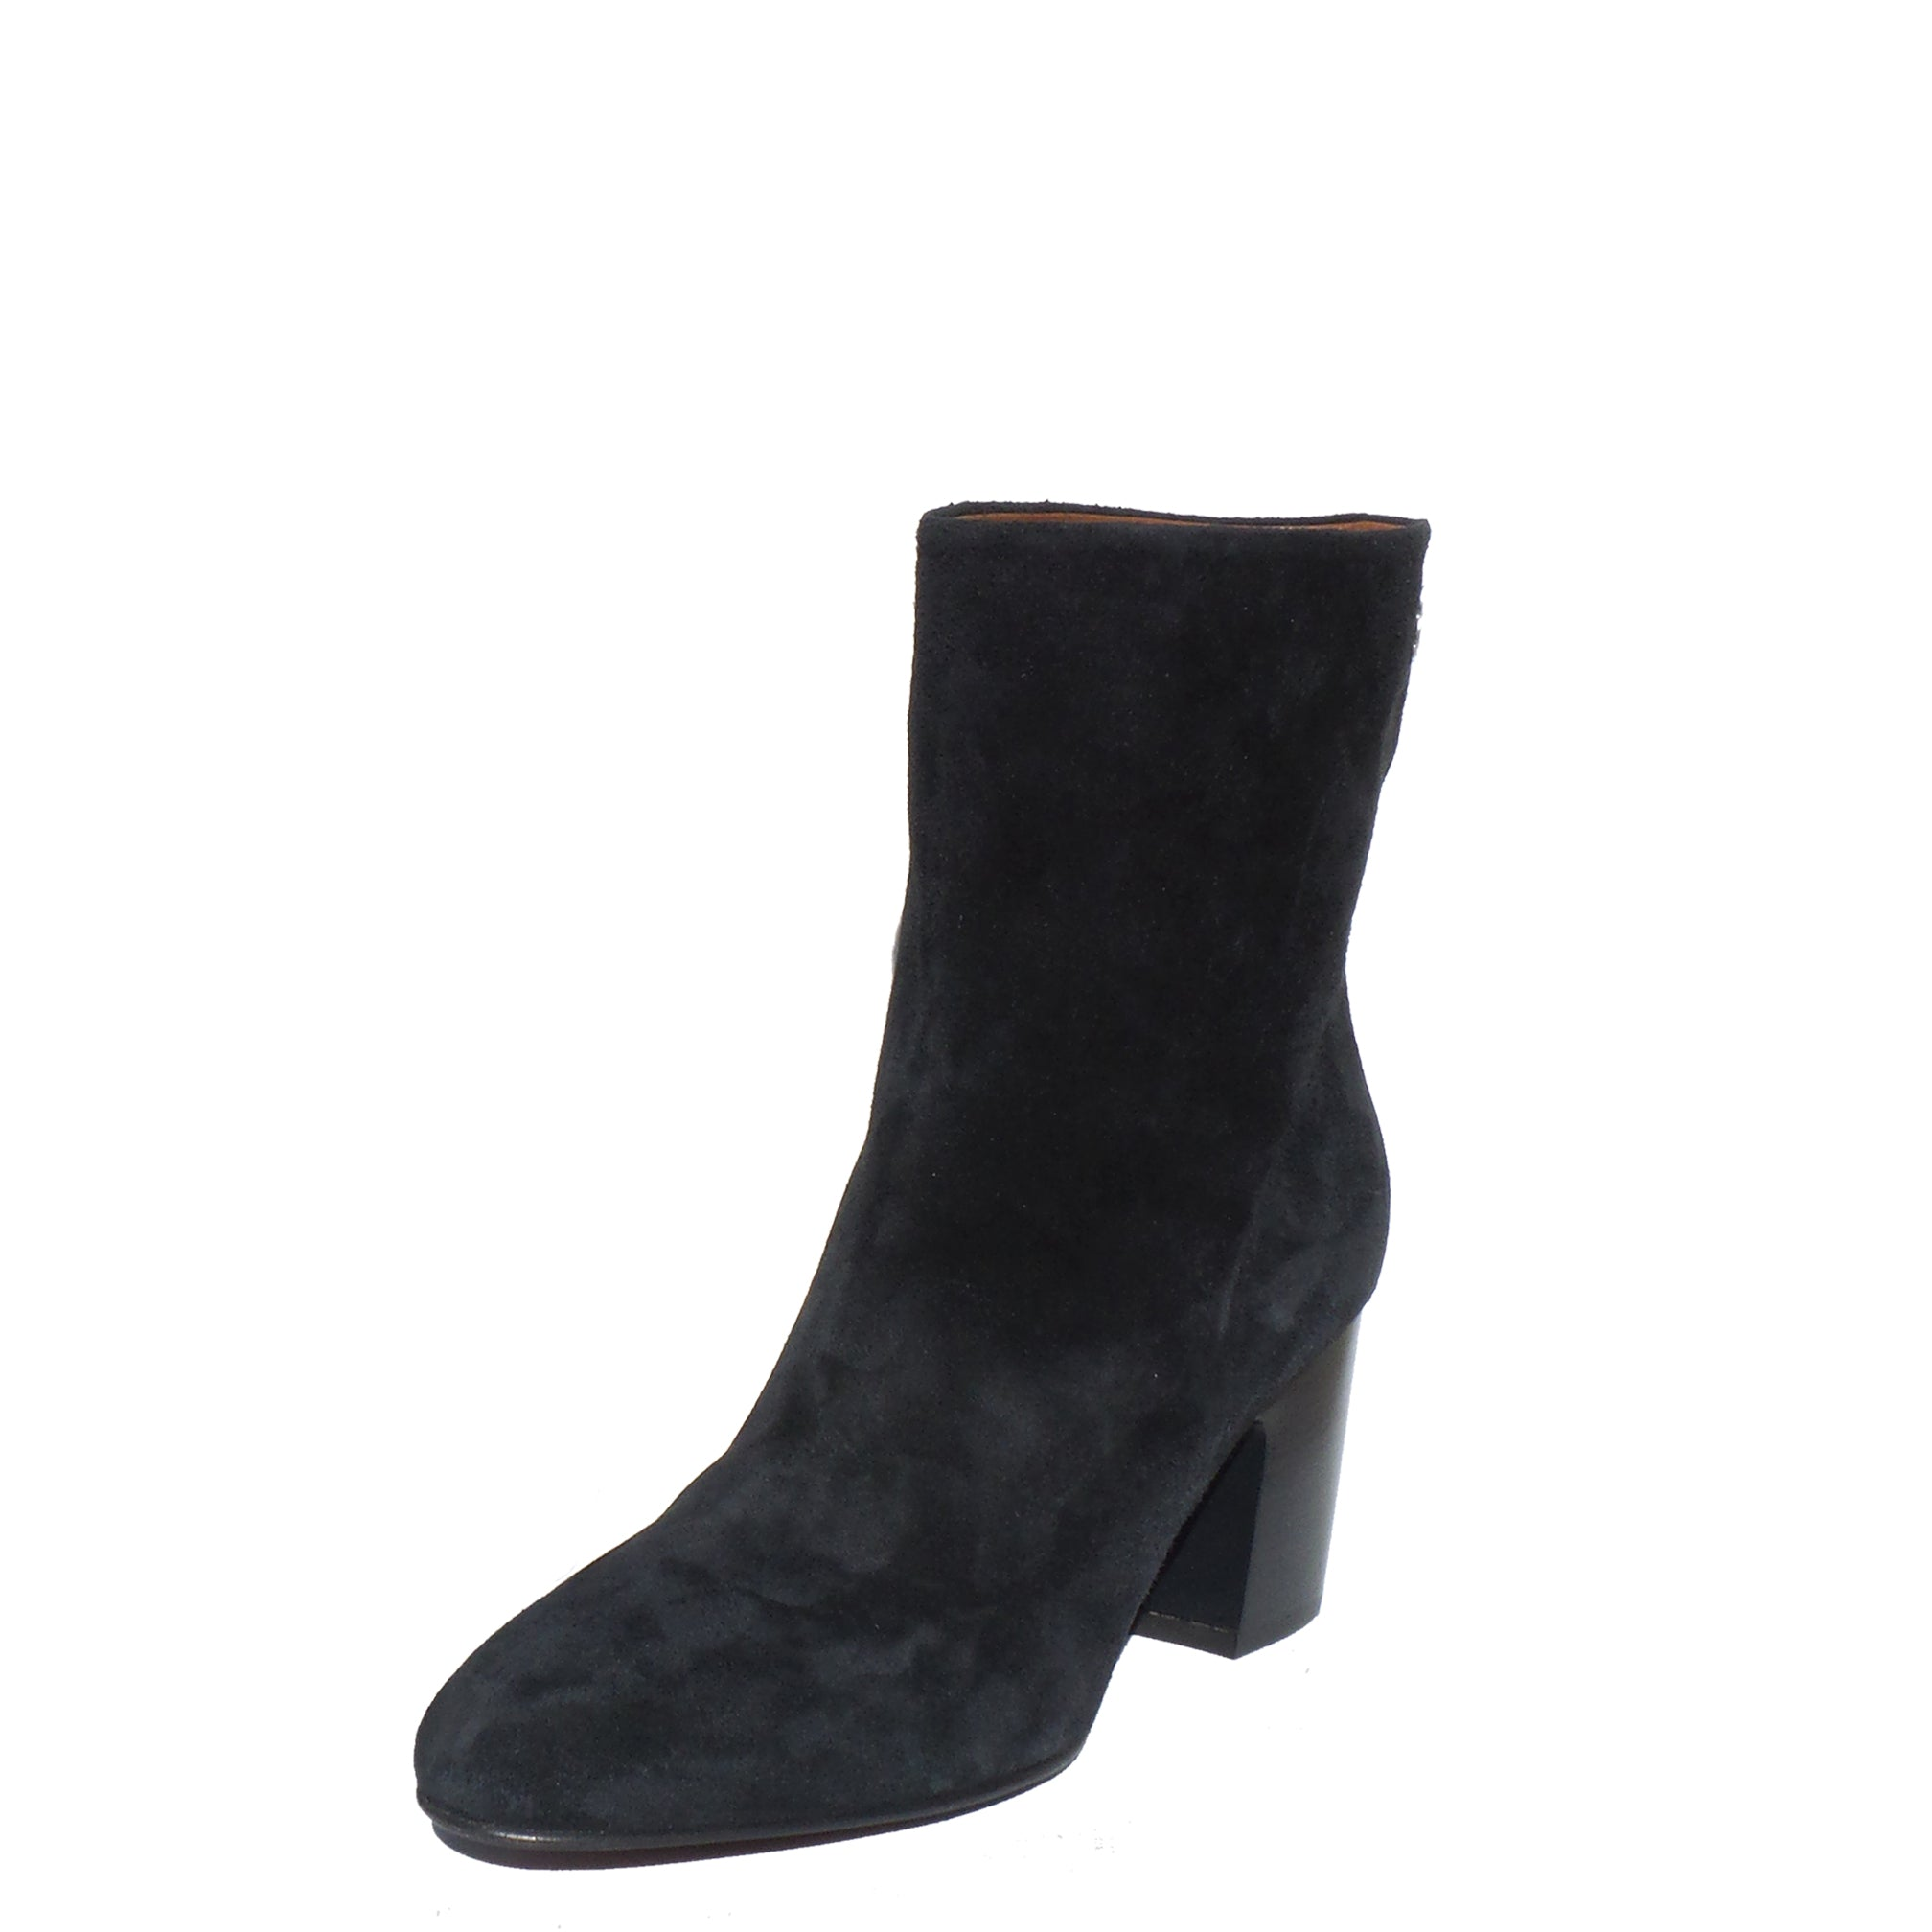 1dddfede22fd CHANEL 16B Midnight Navy Blue Suede Silver CC Block Heel Short Boots 4 –  Encore Resale.com